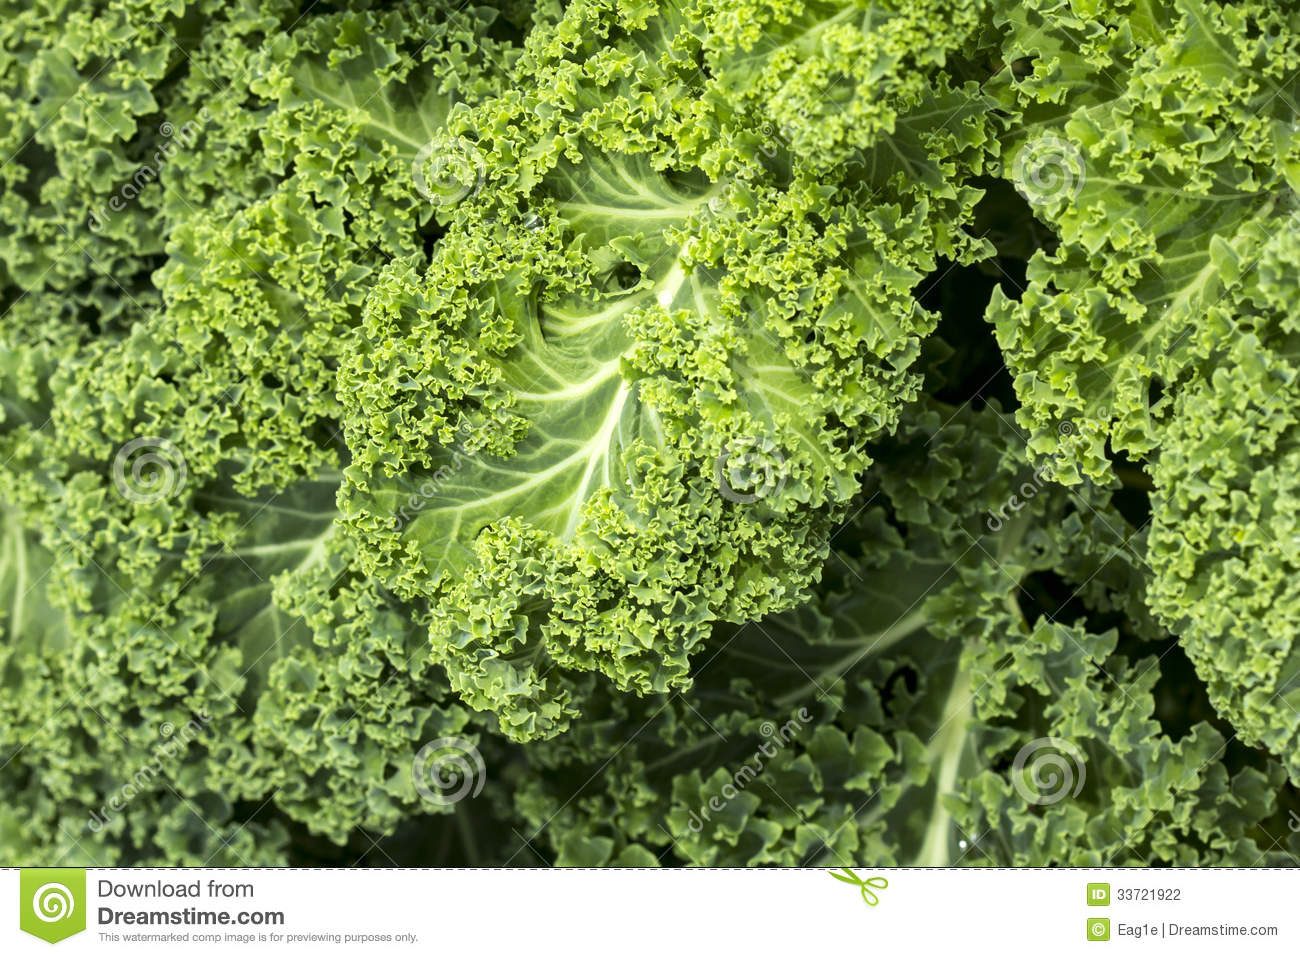 how to cook curly kale